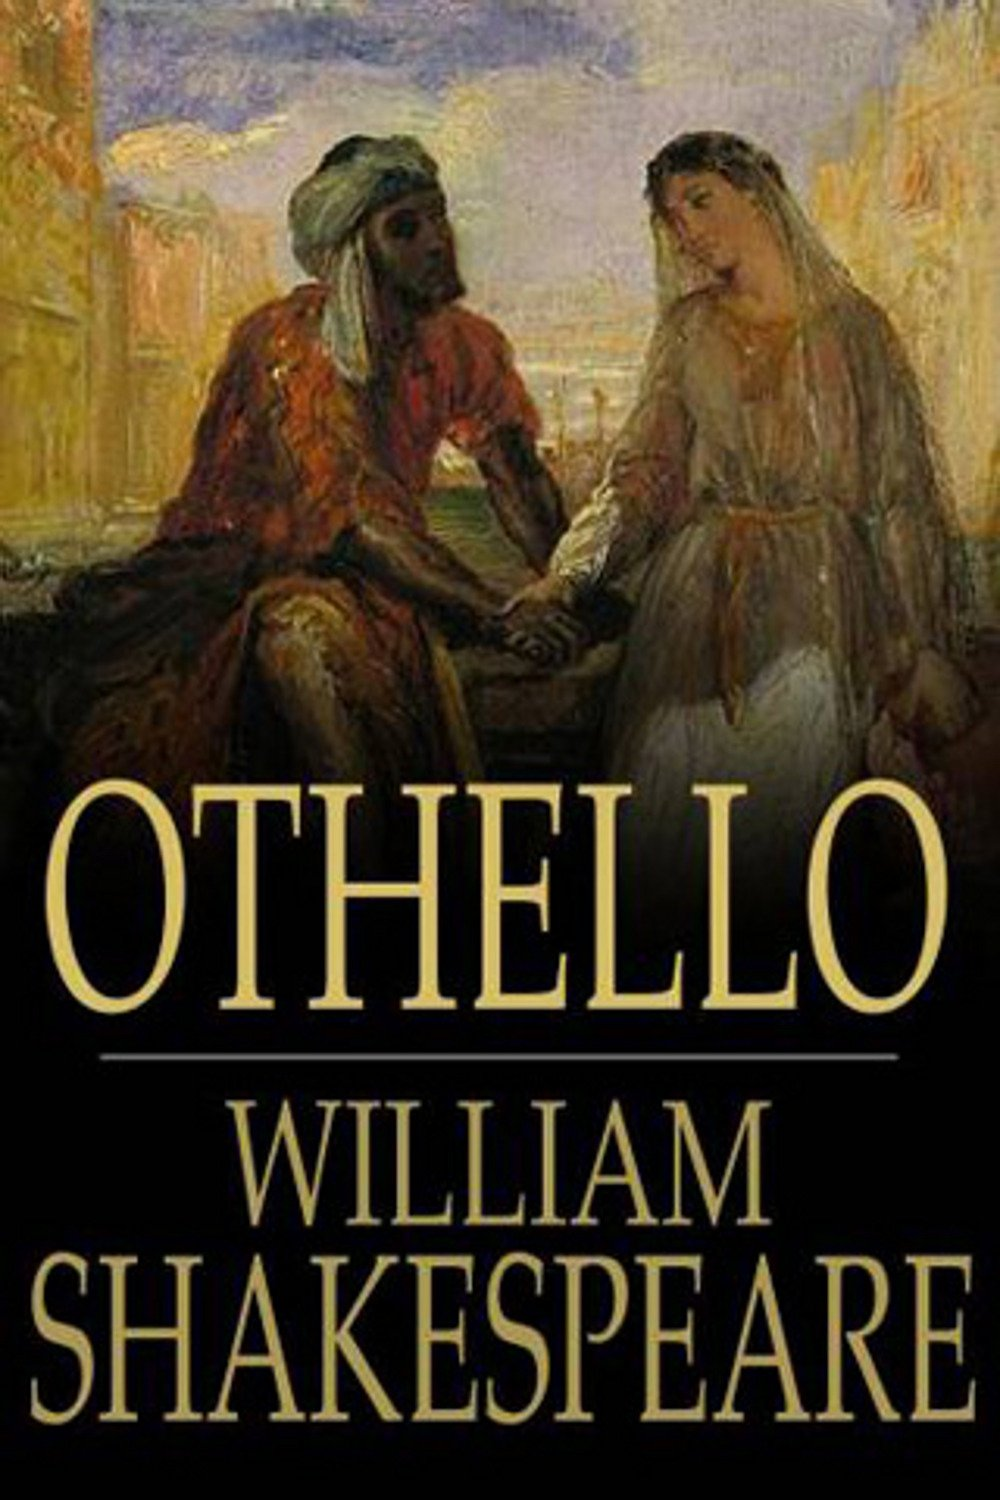 the dangers caused by jealousy chaos and tragedy in othello a play by william shakespeare Quotes (othello by william shakespeare) speech warning othello of the dangers of jealousy othello that her husband has been the cause of this tragedy.